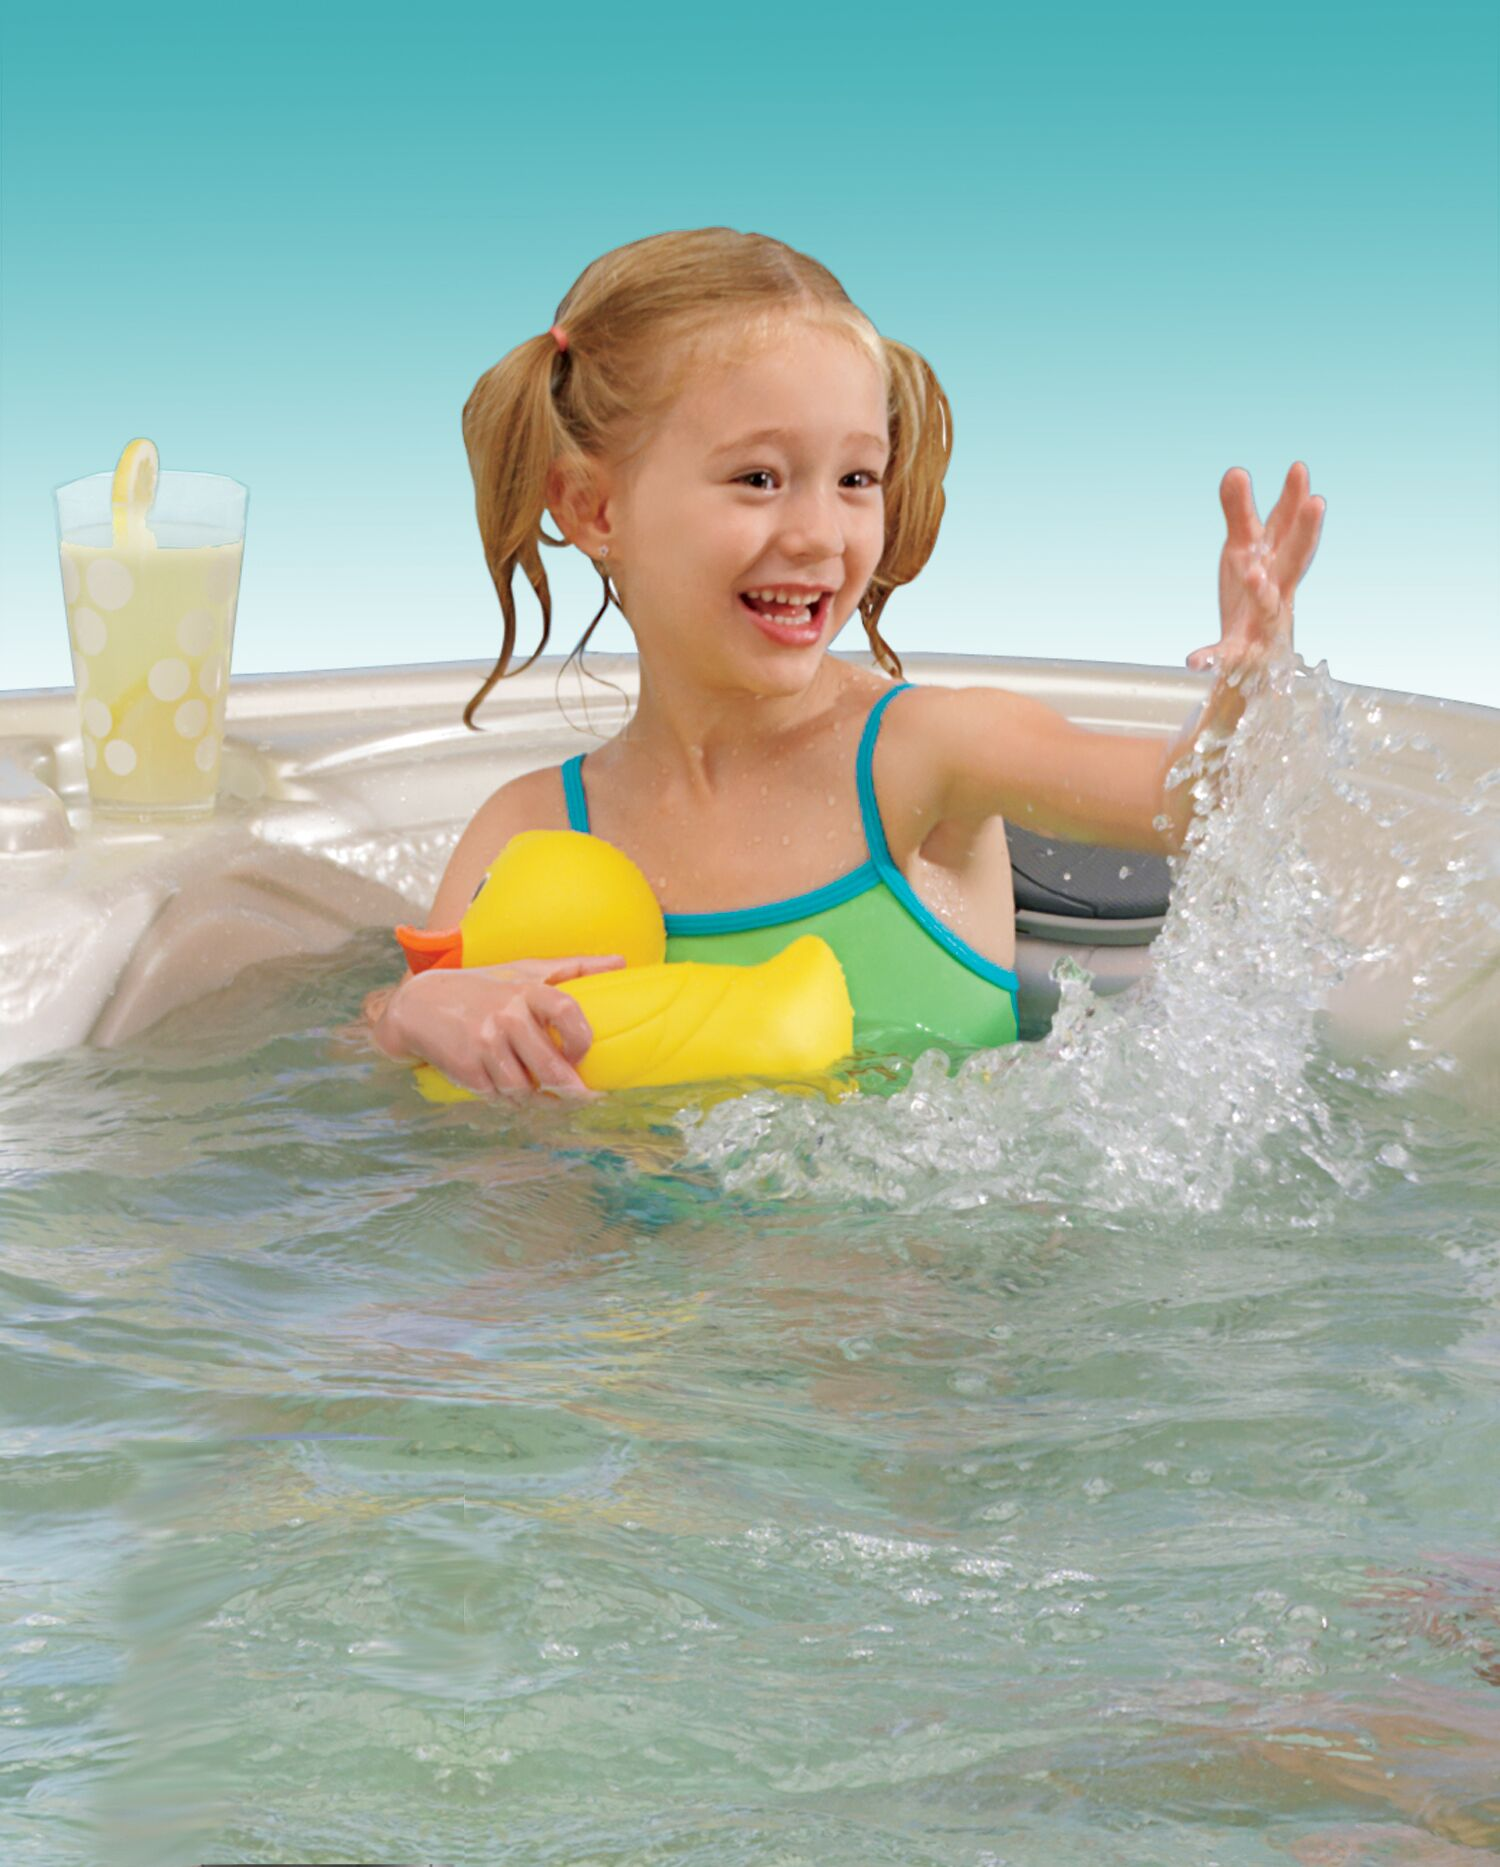 Children can safely enjoy a hot tub by following some safety rules